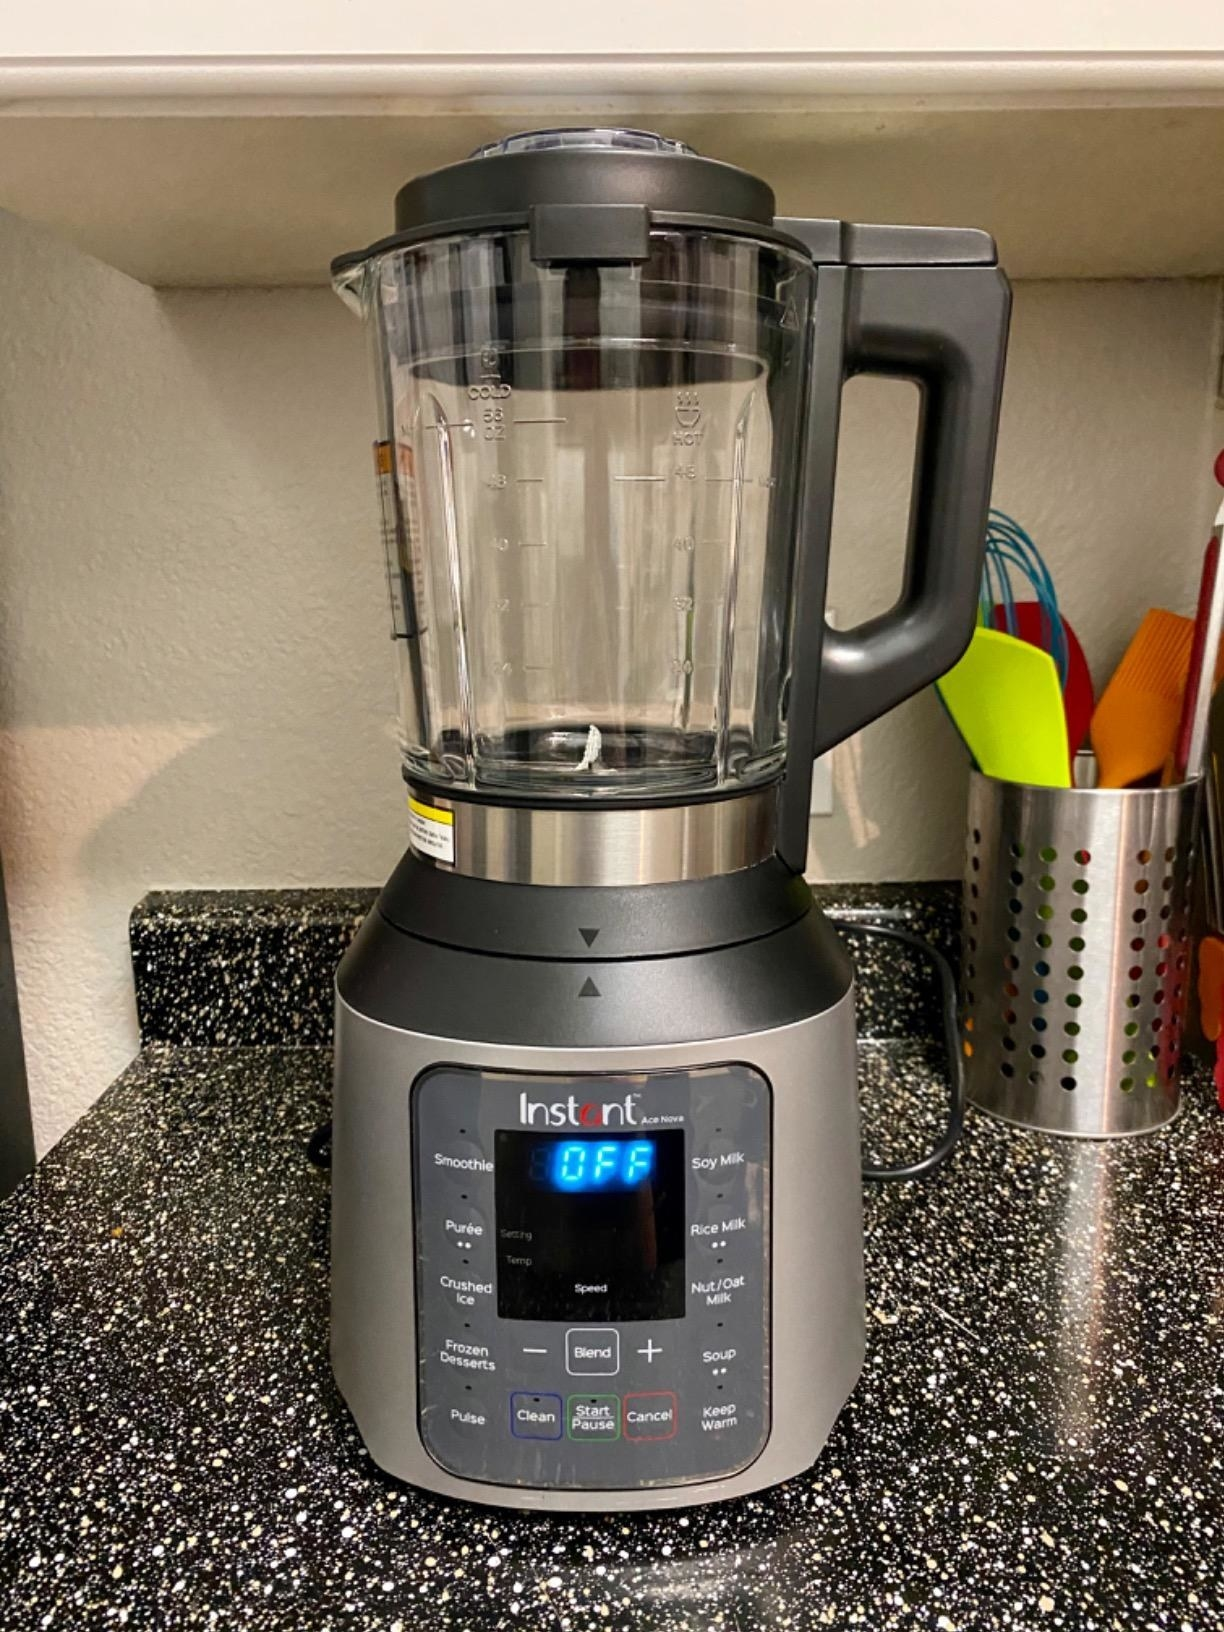 A reviewer's photo of a gray-metallic blender with a digital screen